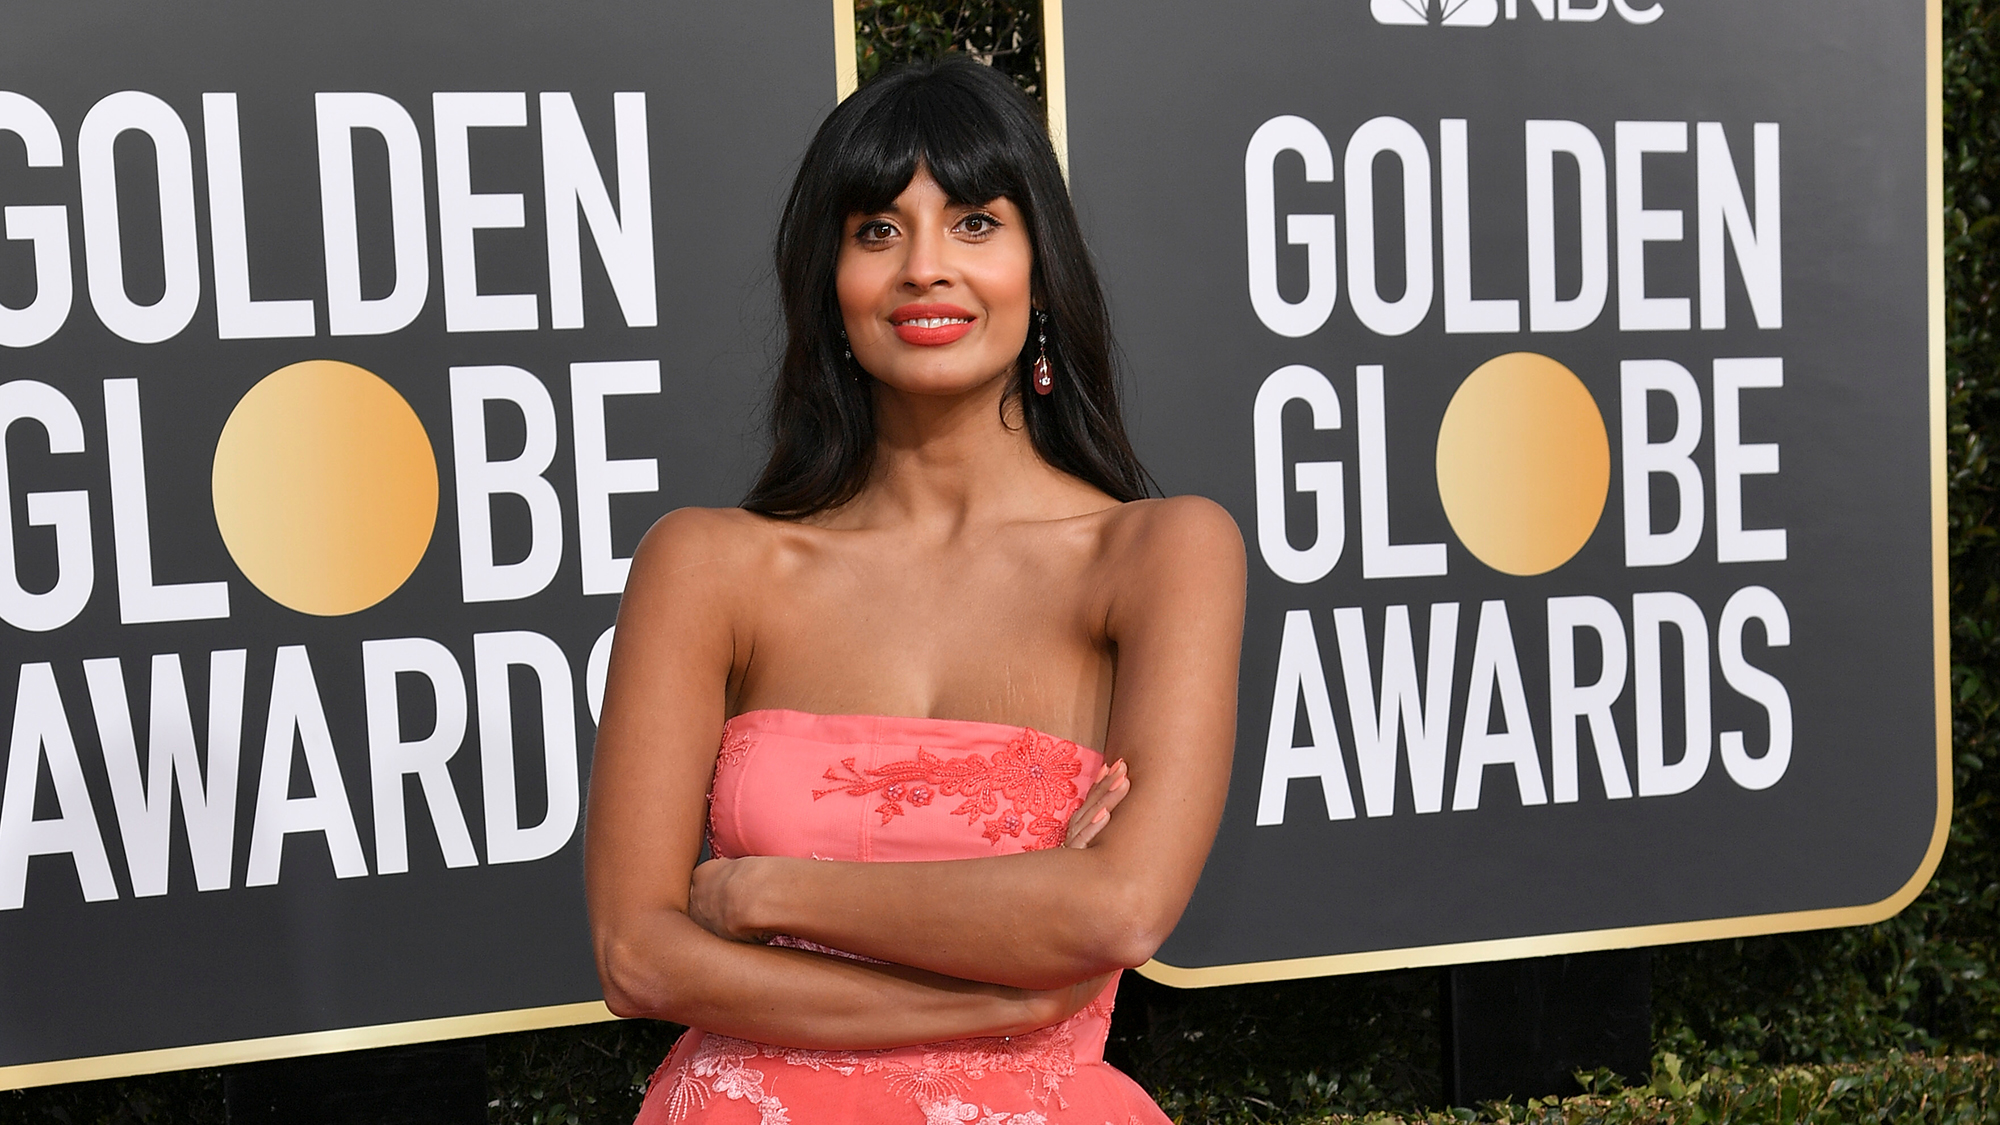 Jameela Jamil wearing jeans under her ballgown is all of us